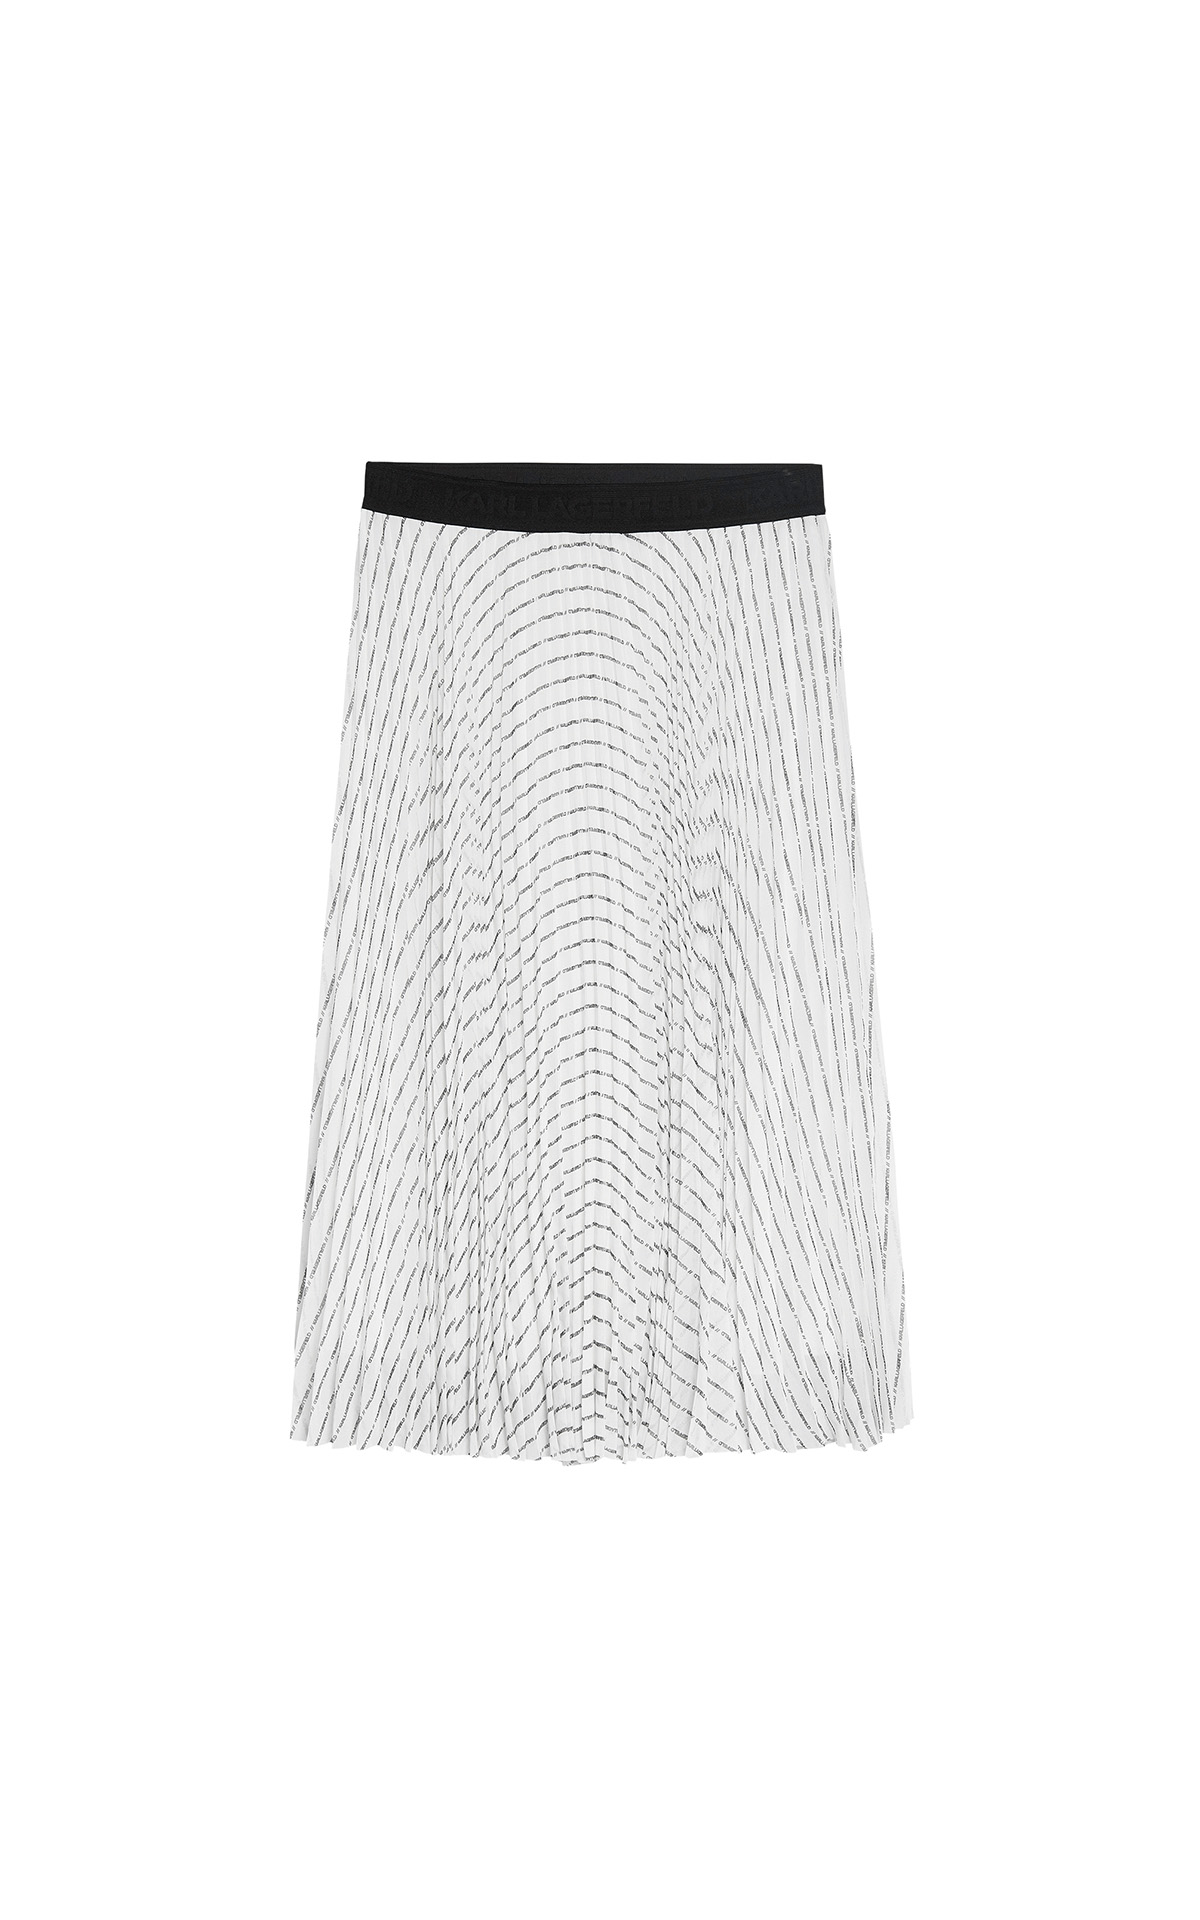 KARL black and white pleated logo midi skirt at KARL LAGERFELD